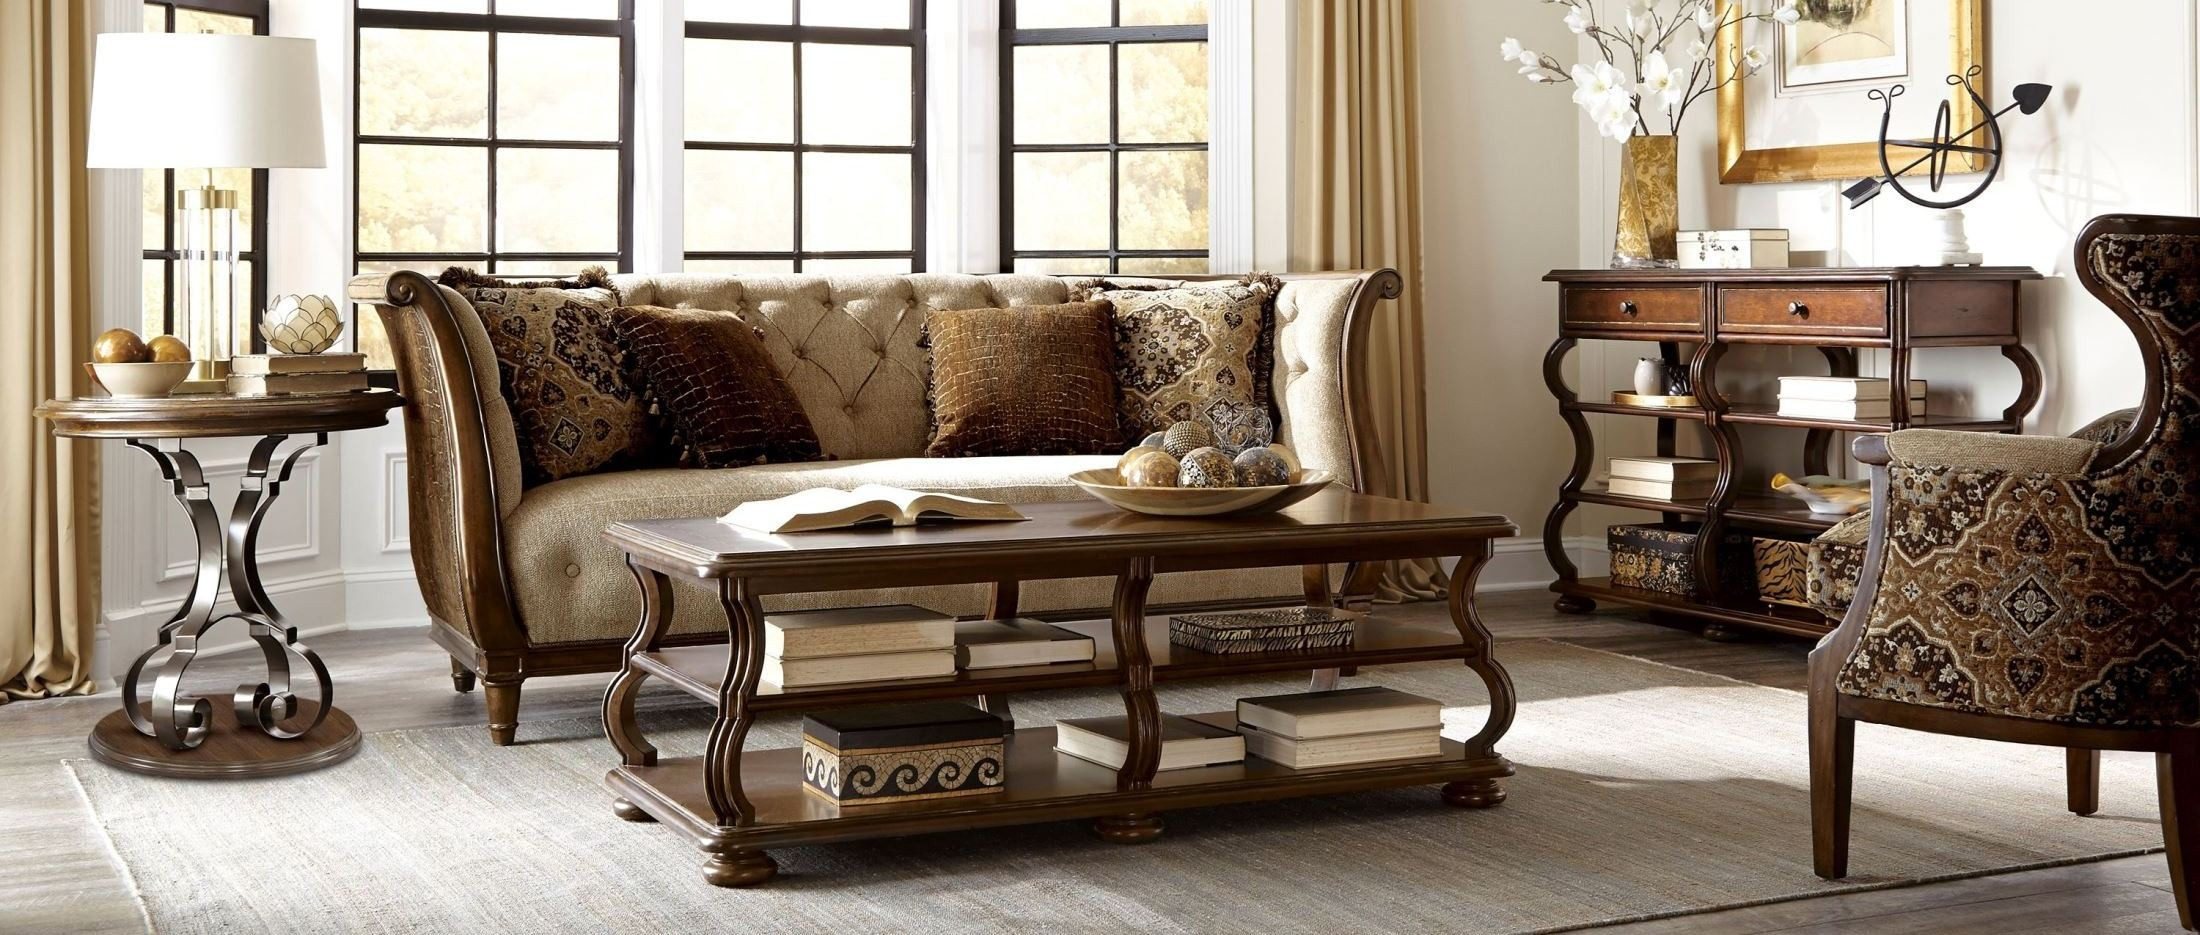 Ava adele tufted back living room set 513501 5101aa a r t